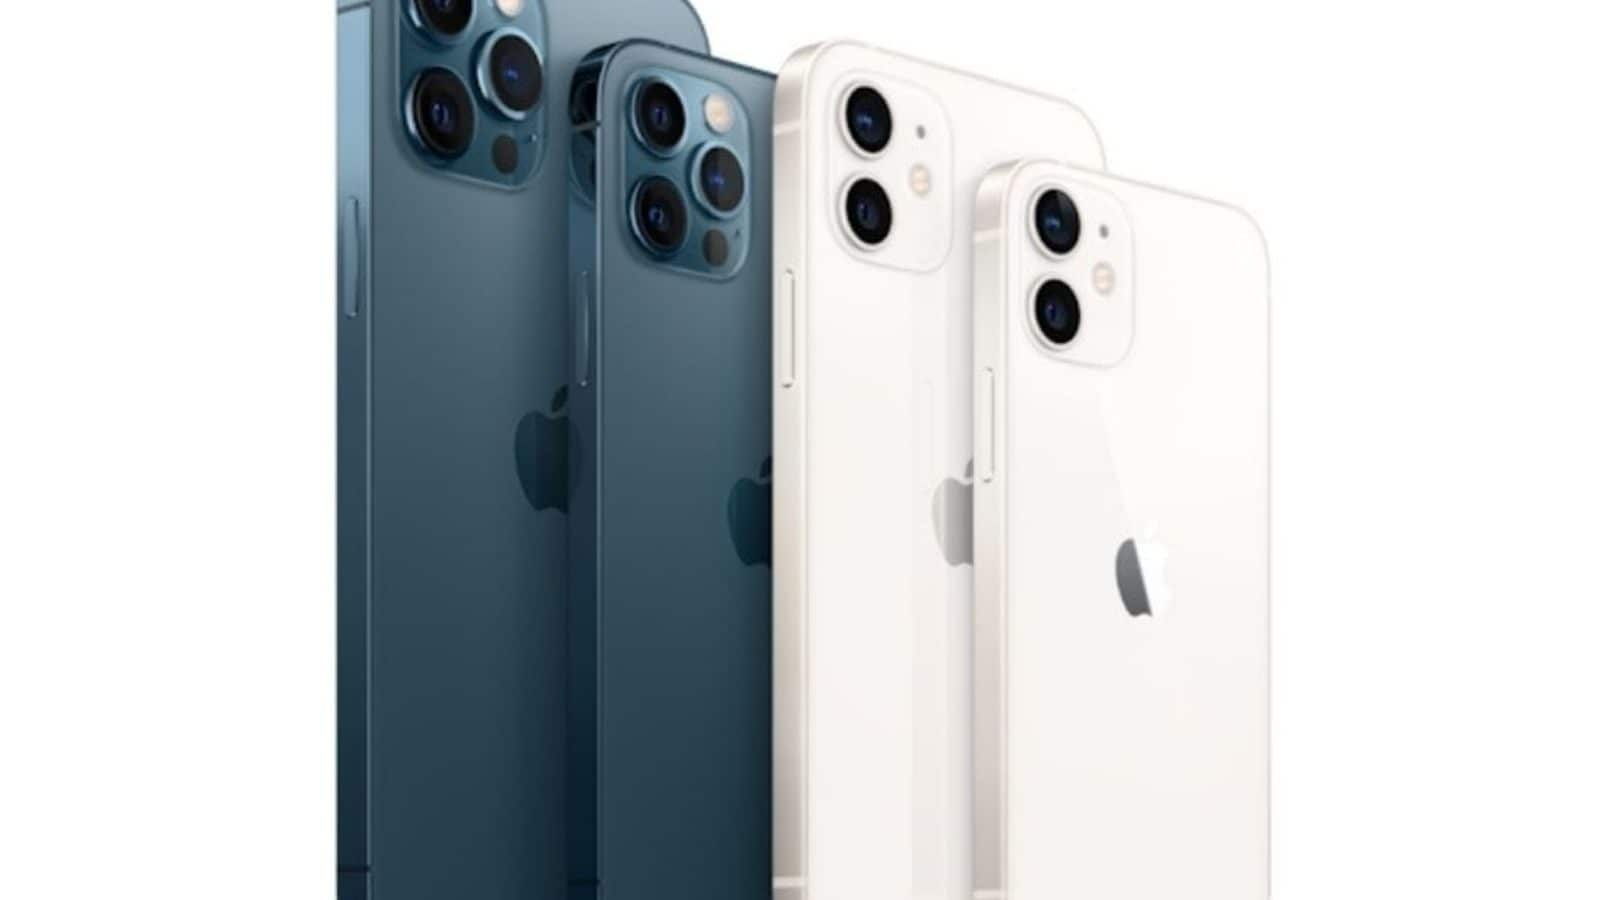 iPhone 13 May Come With A Bigger Battery, Apple To Maintain Pricing Strategy: Report